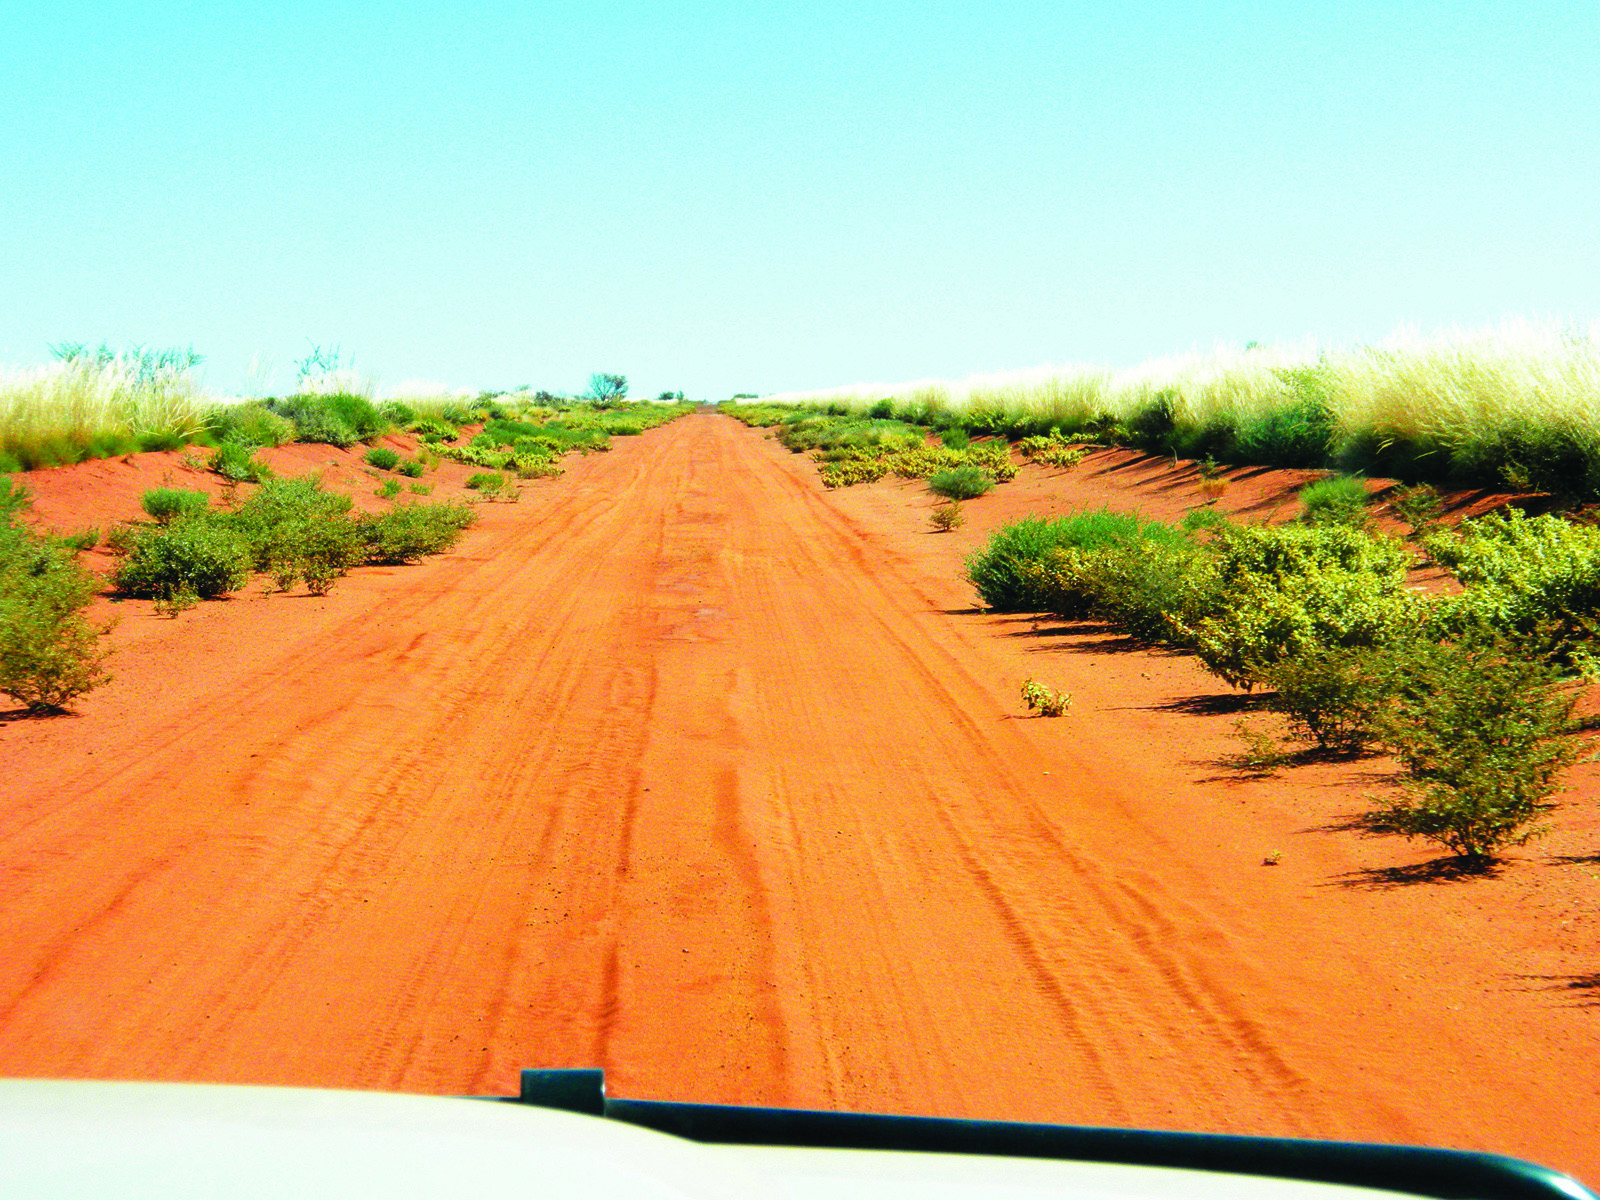 A red dirt road, surrounded by green shrubbery, stretches into the distance